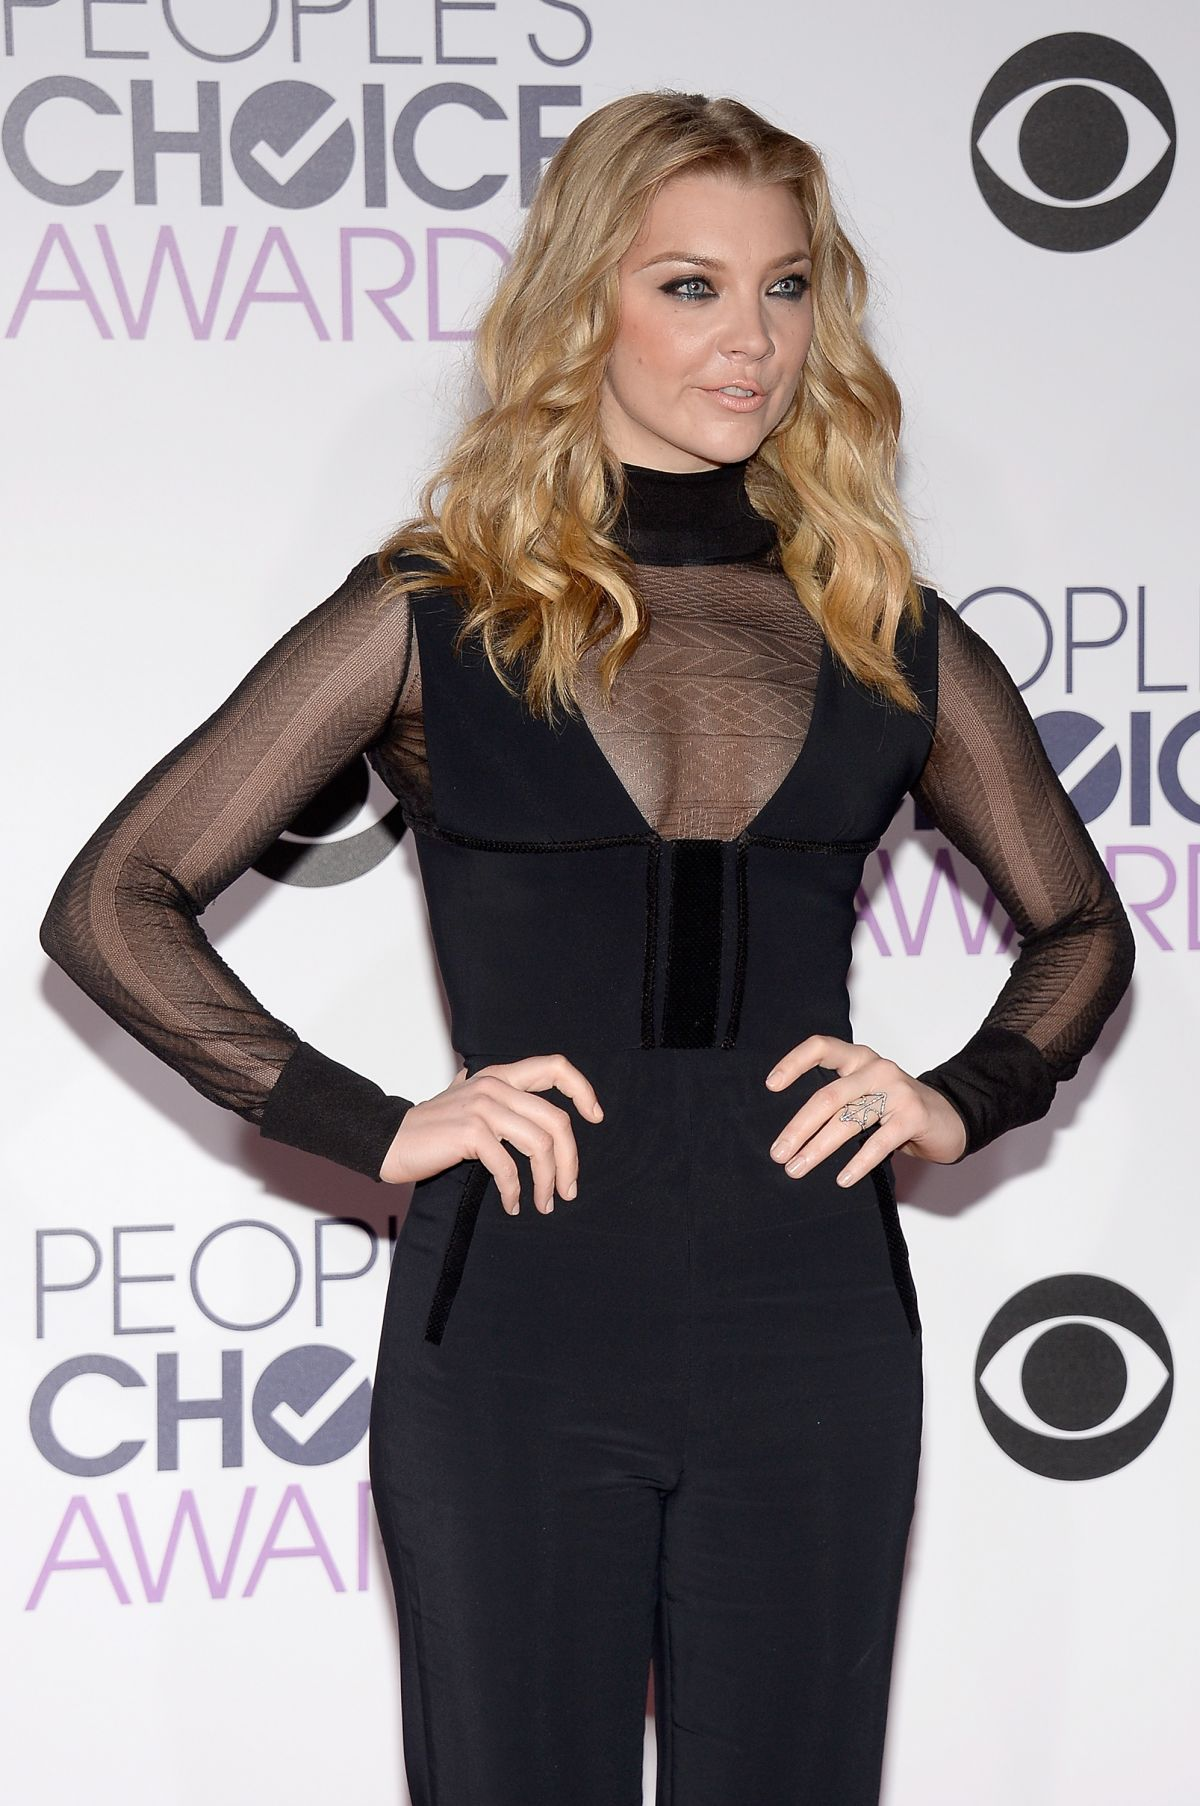 natalie-dormer-at-2016-people-s-choice-awards-in-los-angeles-01-06-2016_1